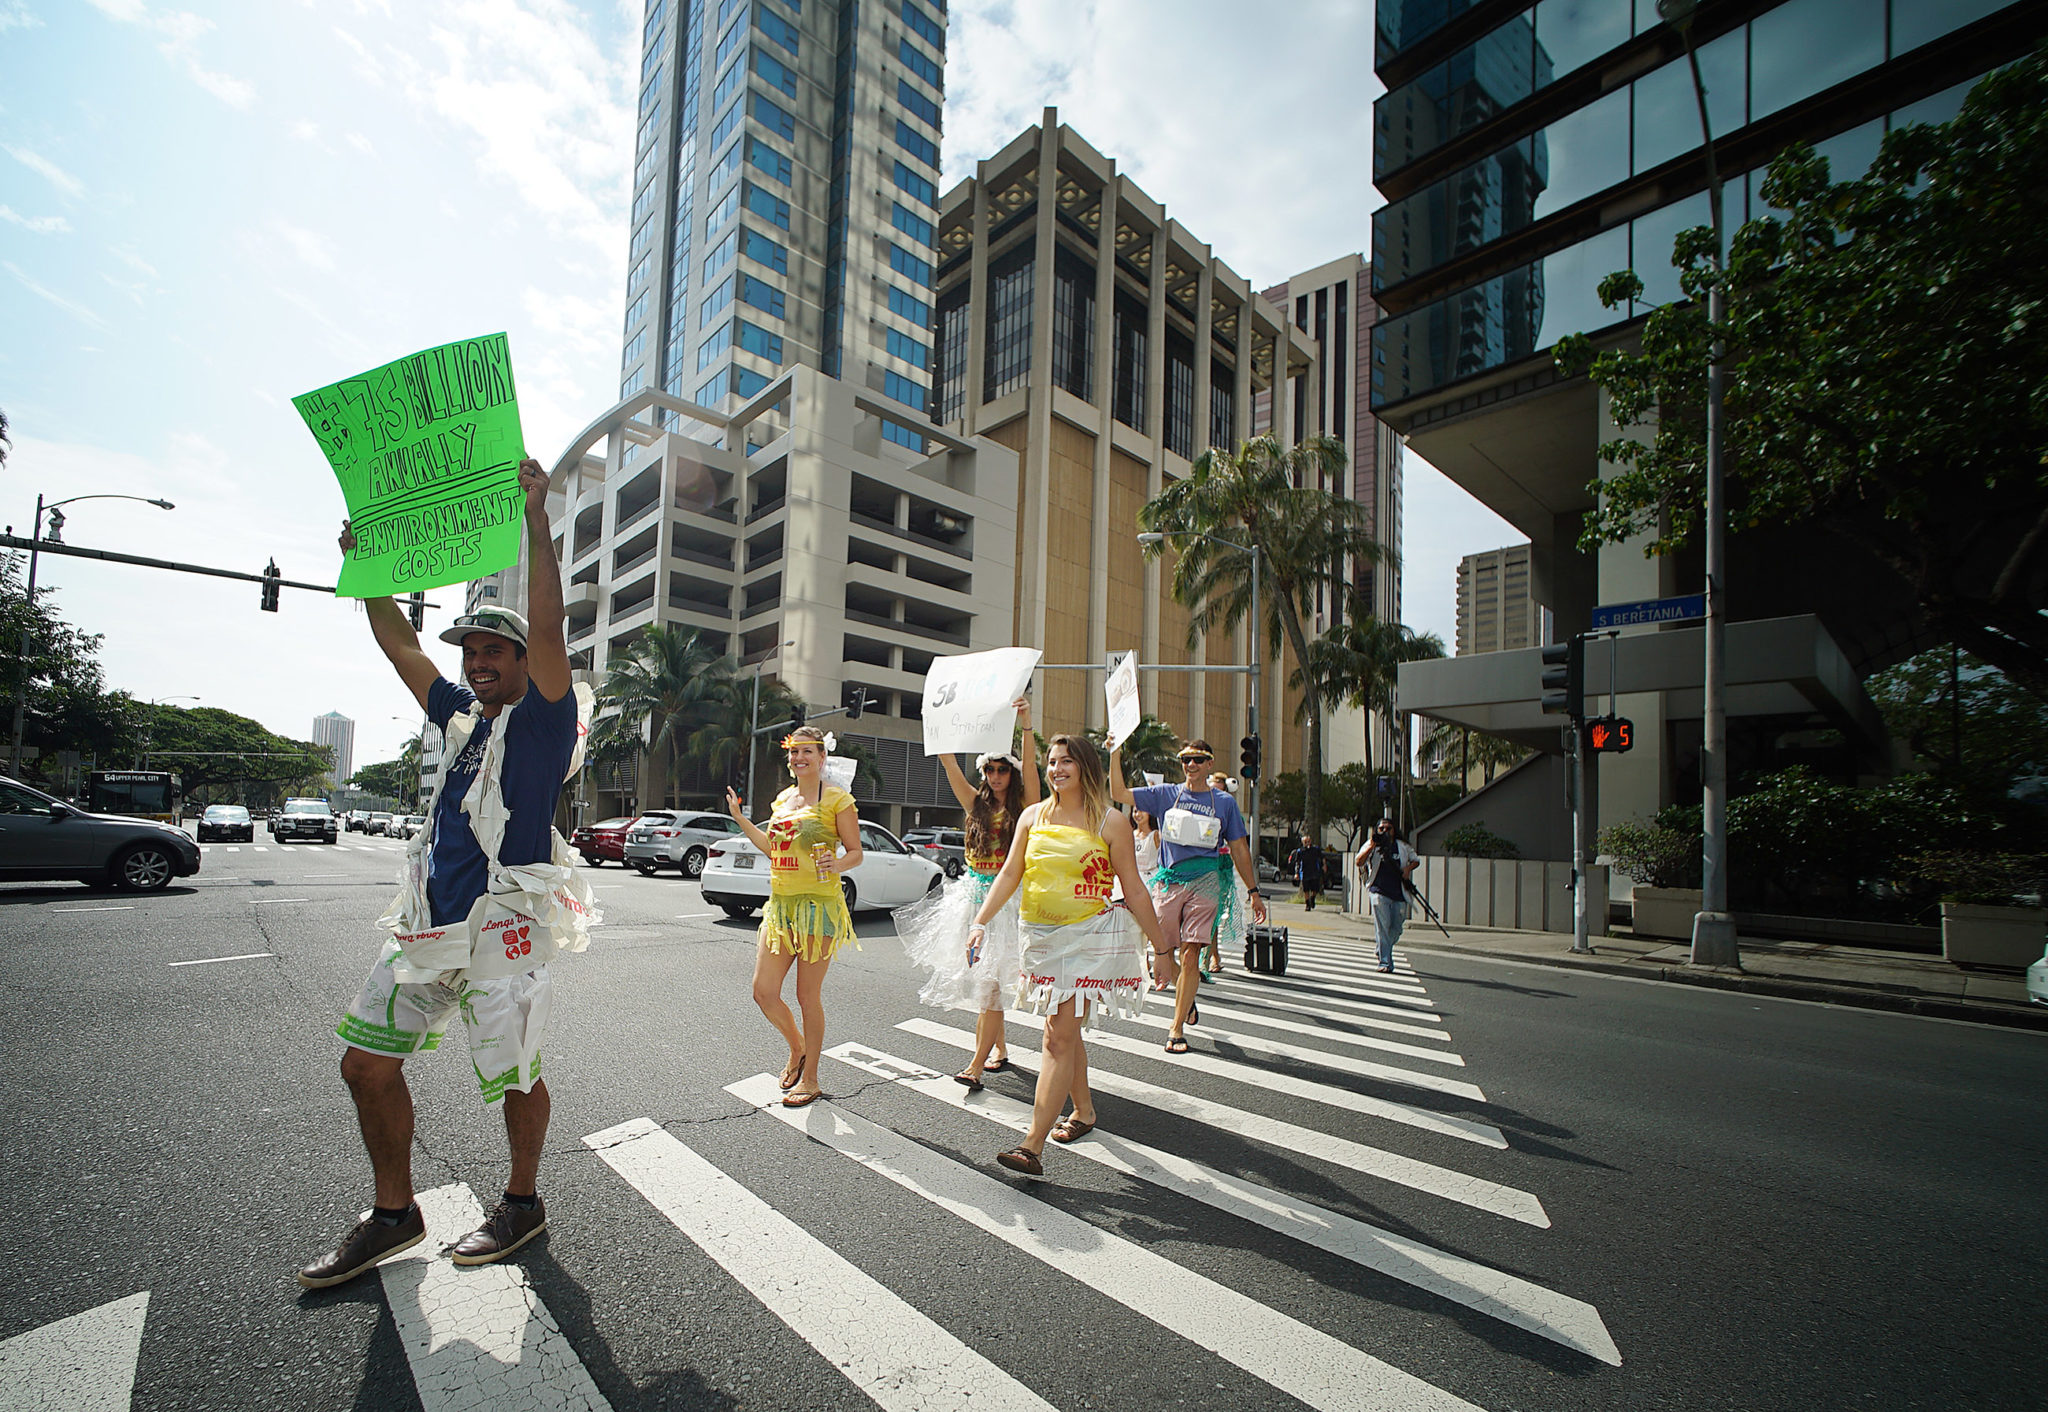 <p>The protesters marched up Bishop Street on their approach to Longs Drugs, one of the companies that now uses thicker plastic bags that are exempt from the current Oahu ban.</p>